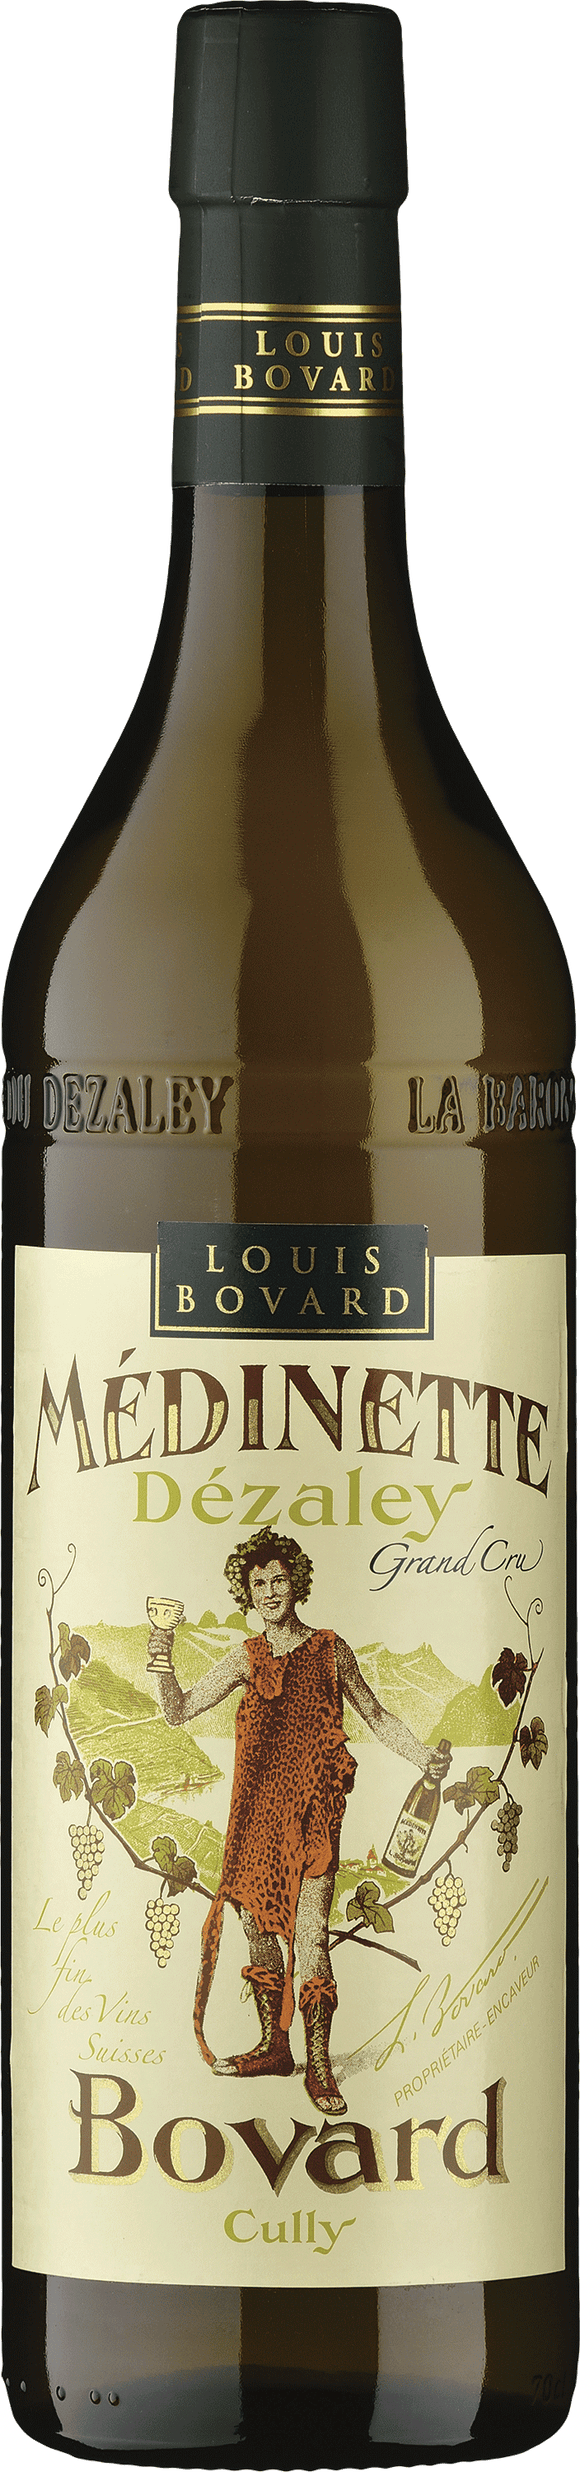 Dézaley Médinette